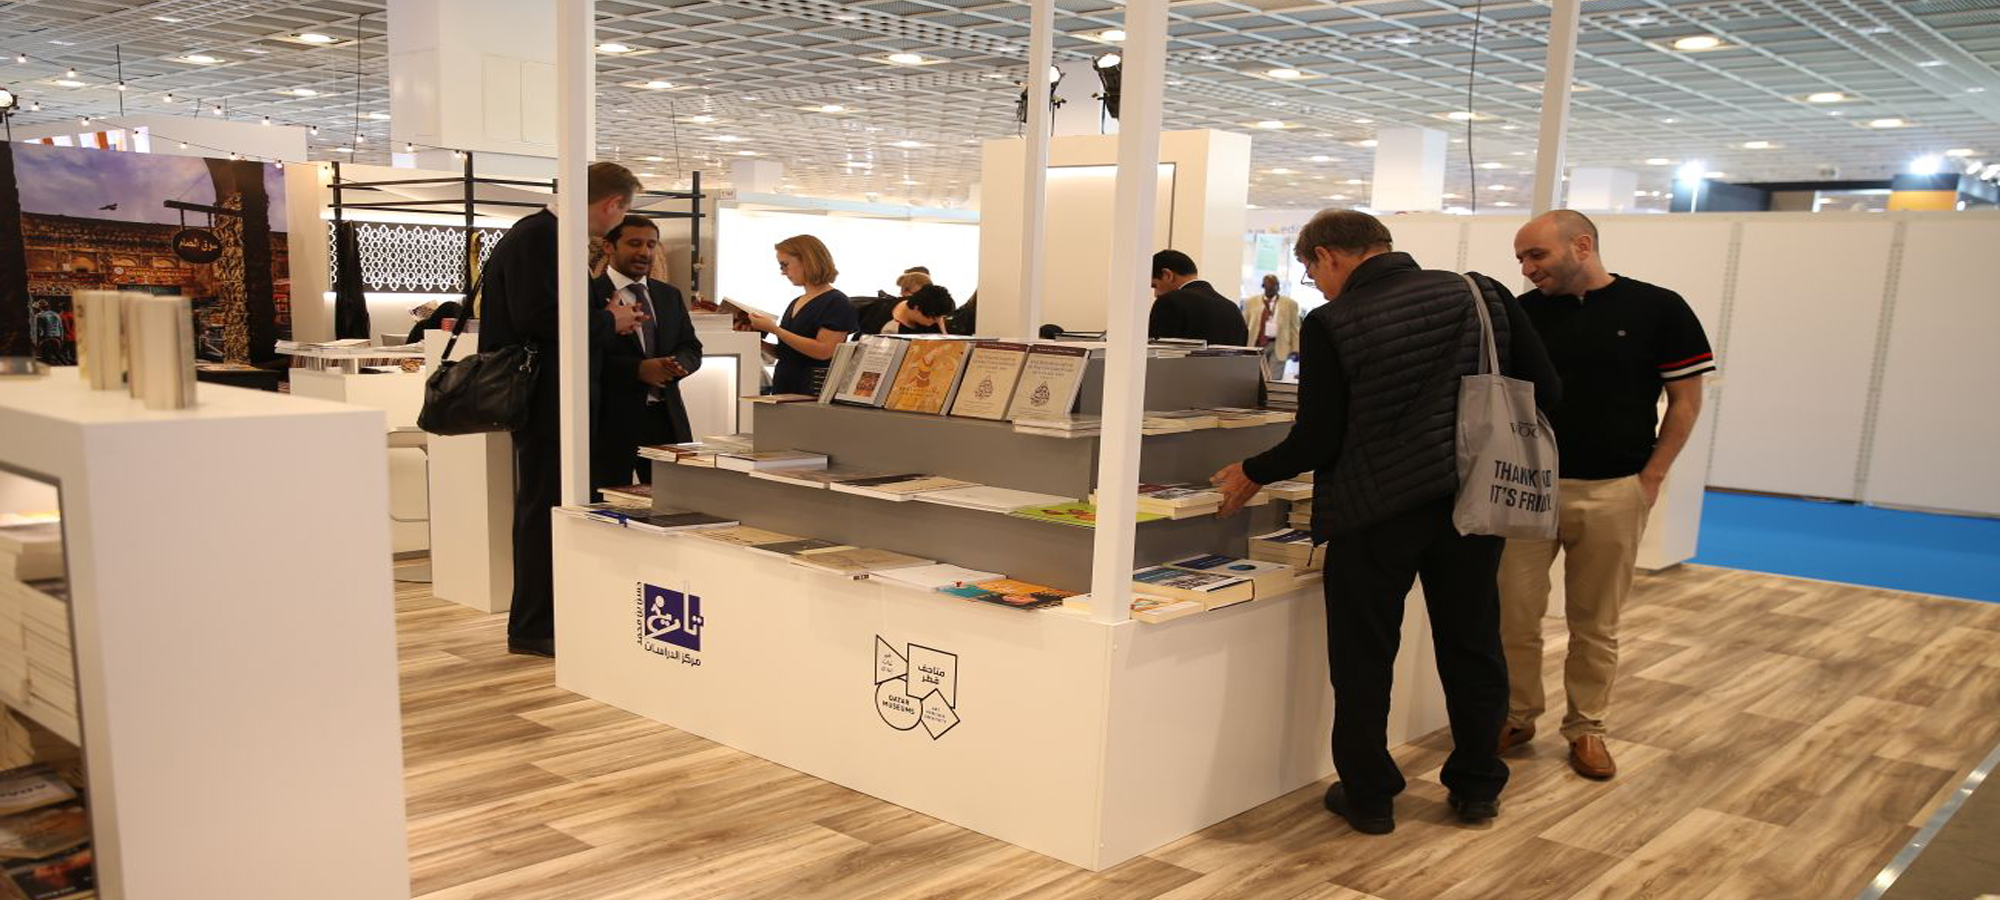 The Center participates with its publications in the Frankfurt International Book Fair 2017